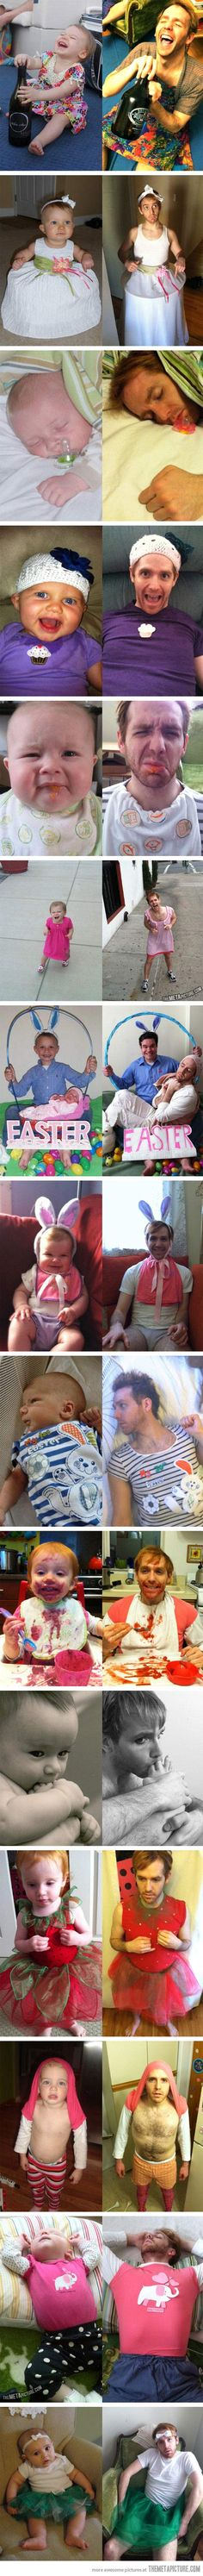 Baby pictures reenacted. Um, the foot one is ew. But these are hysterical!